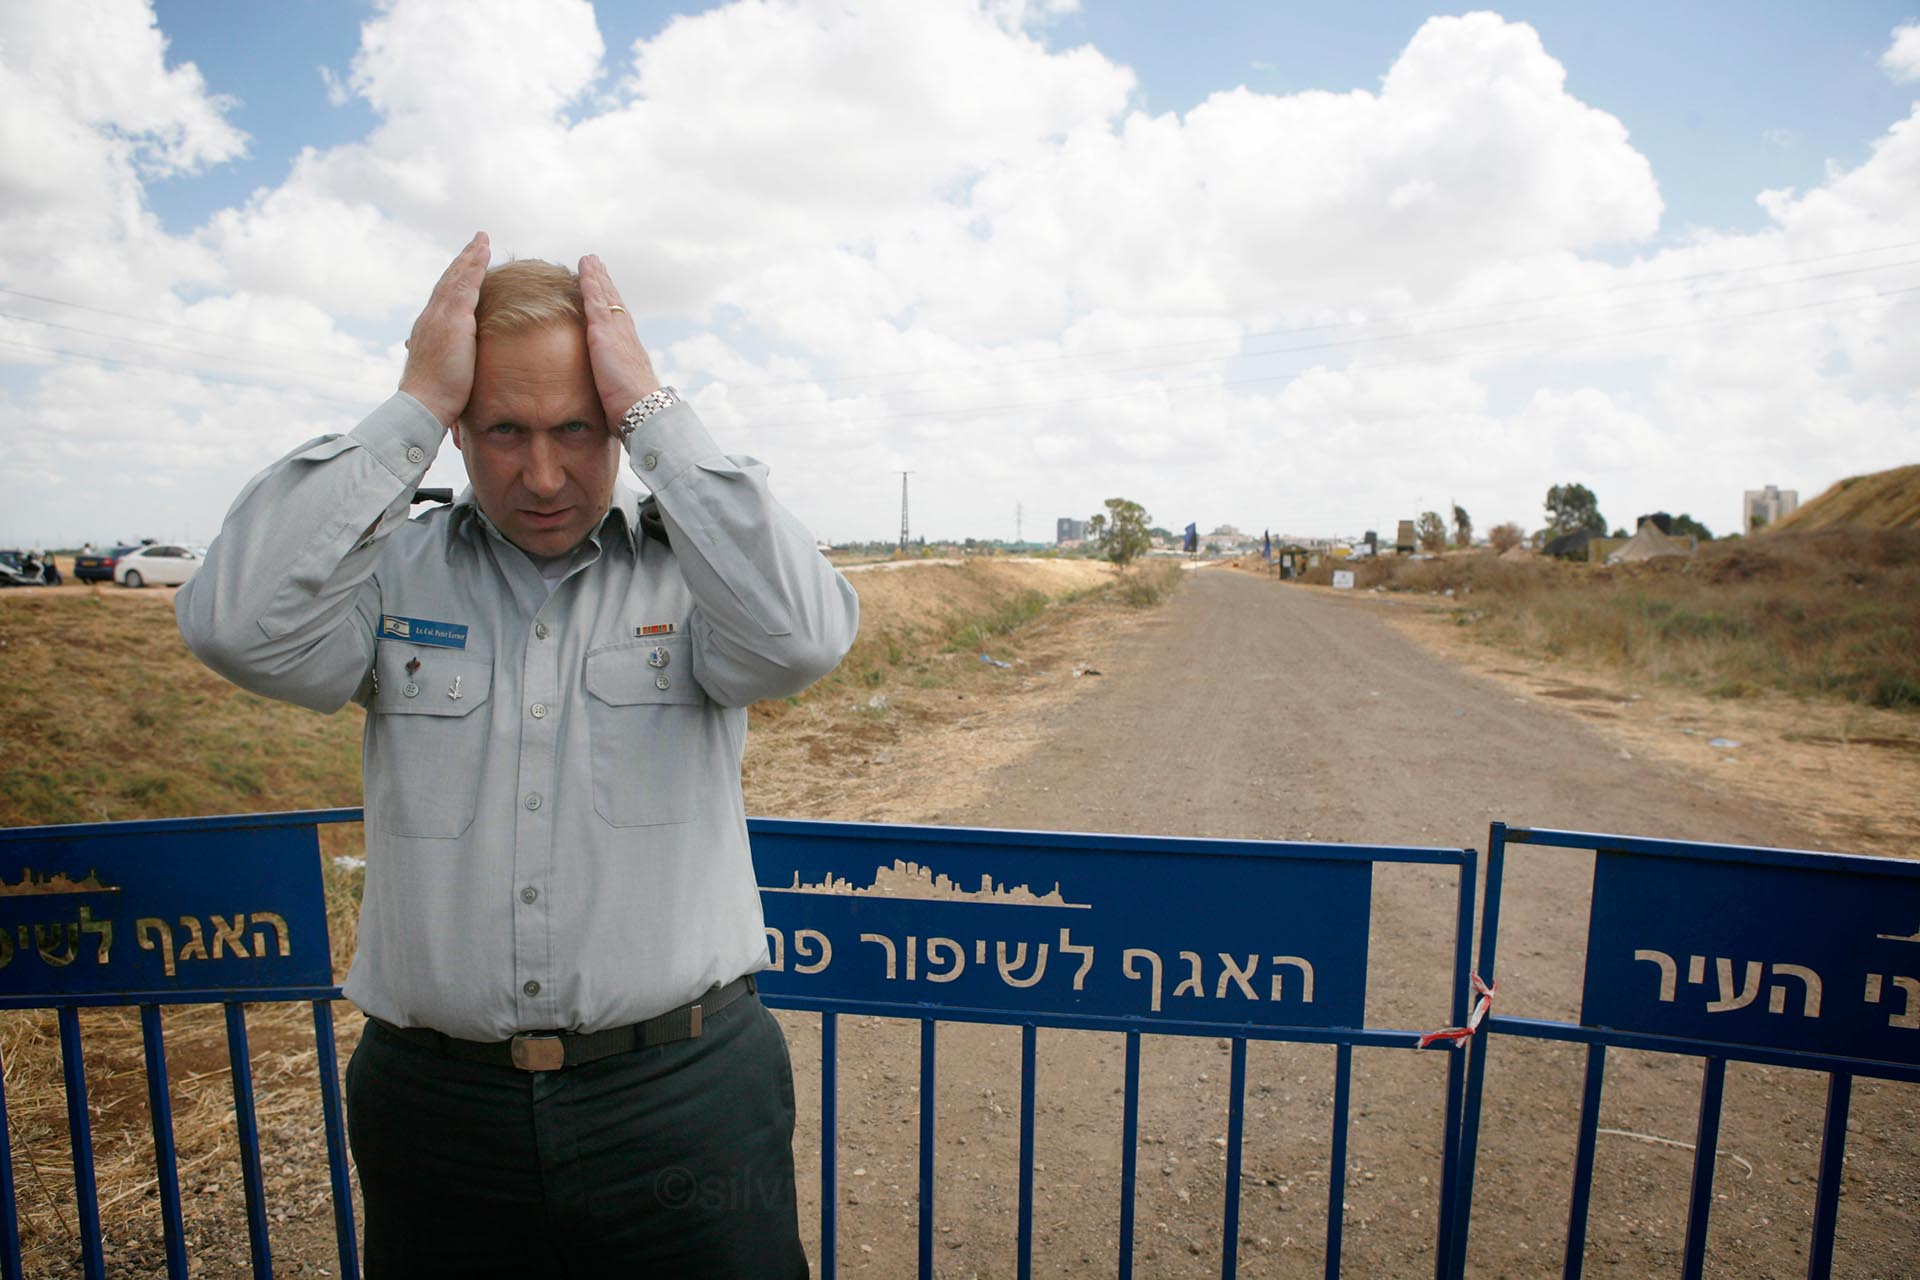 Israeli armed forces spokesperson Peter Lerner meets the press at an 'iron dome' tour. Israel, July 2014